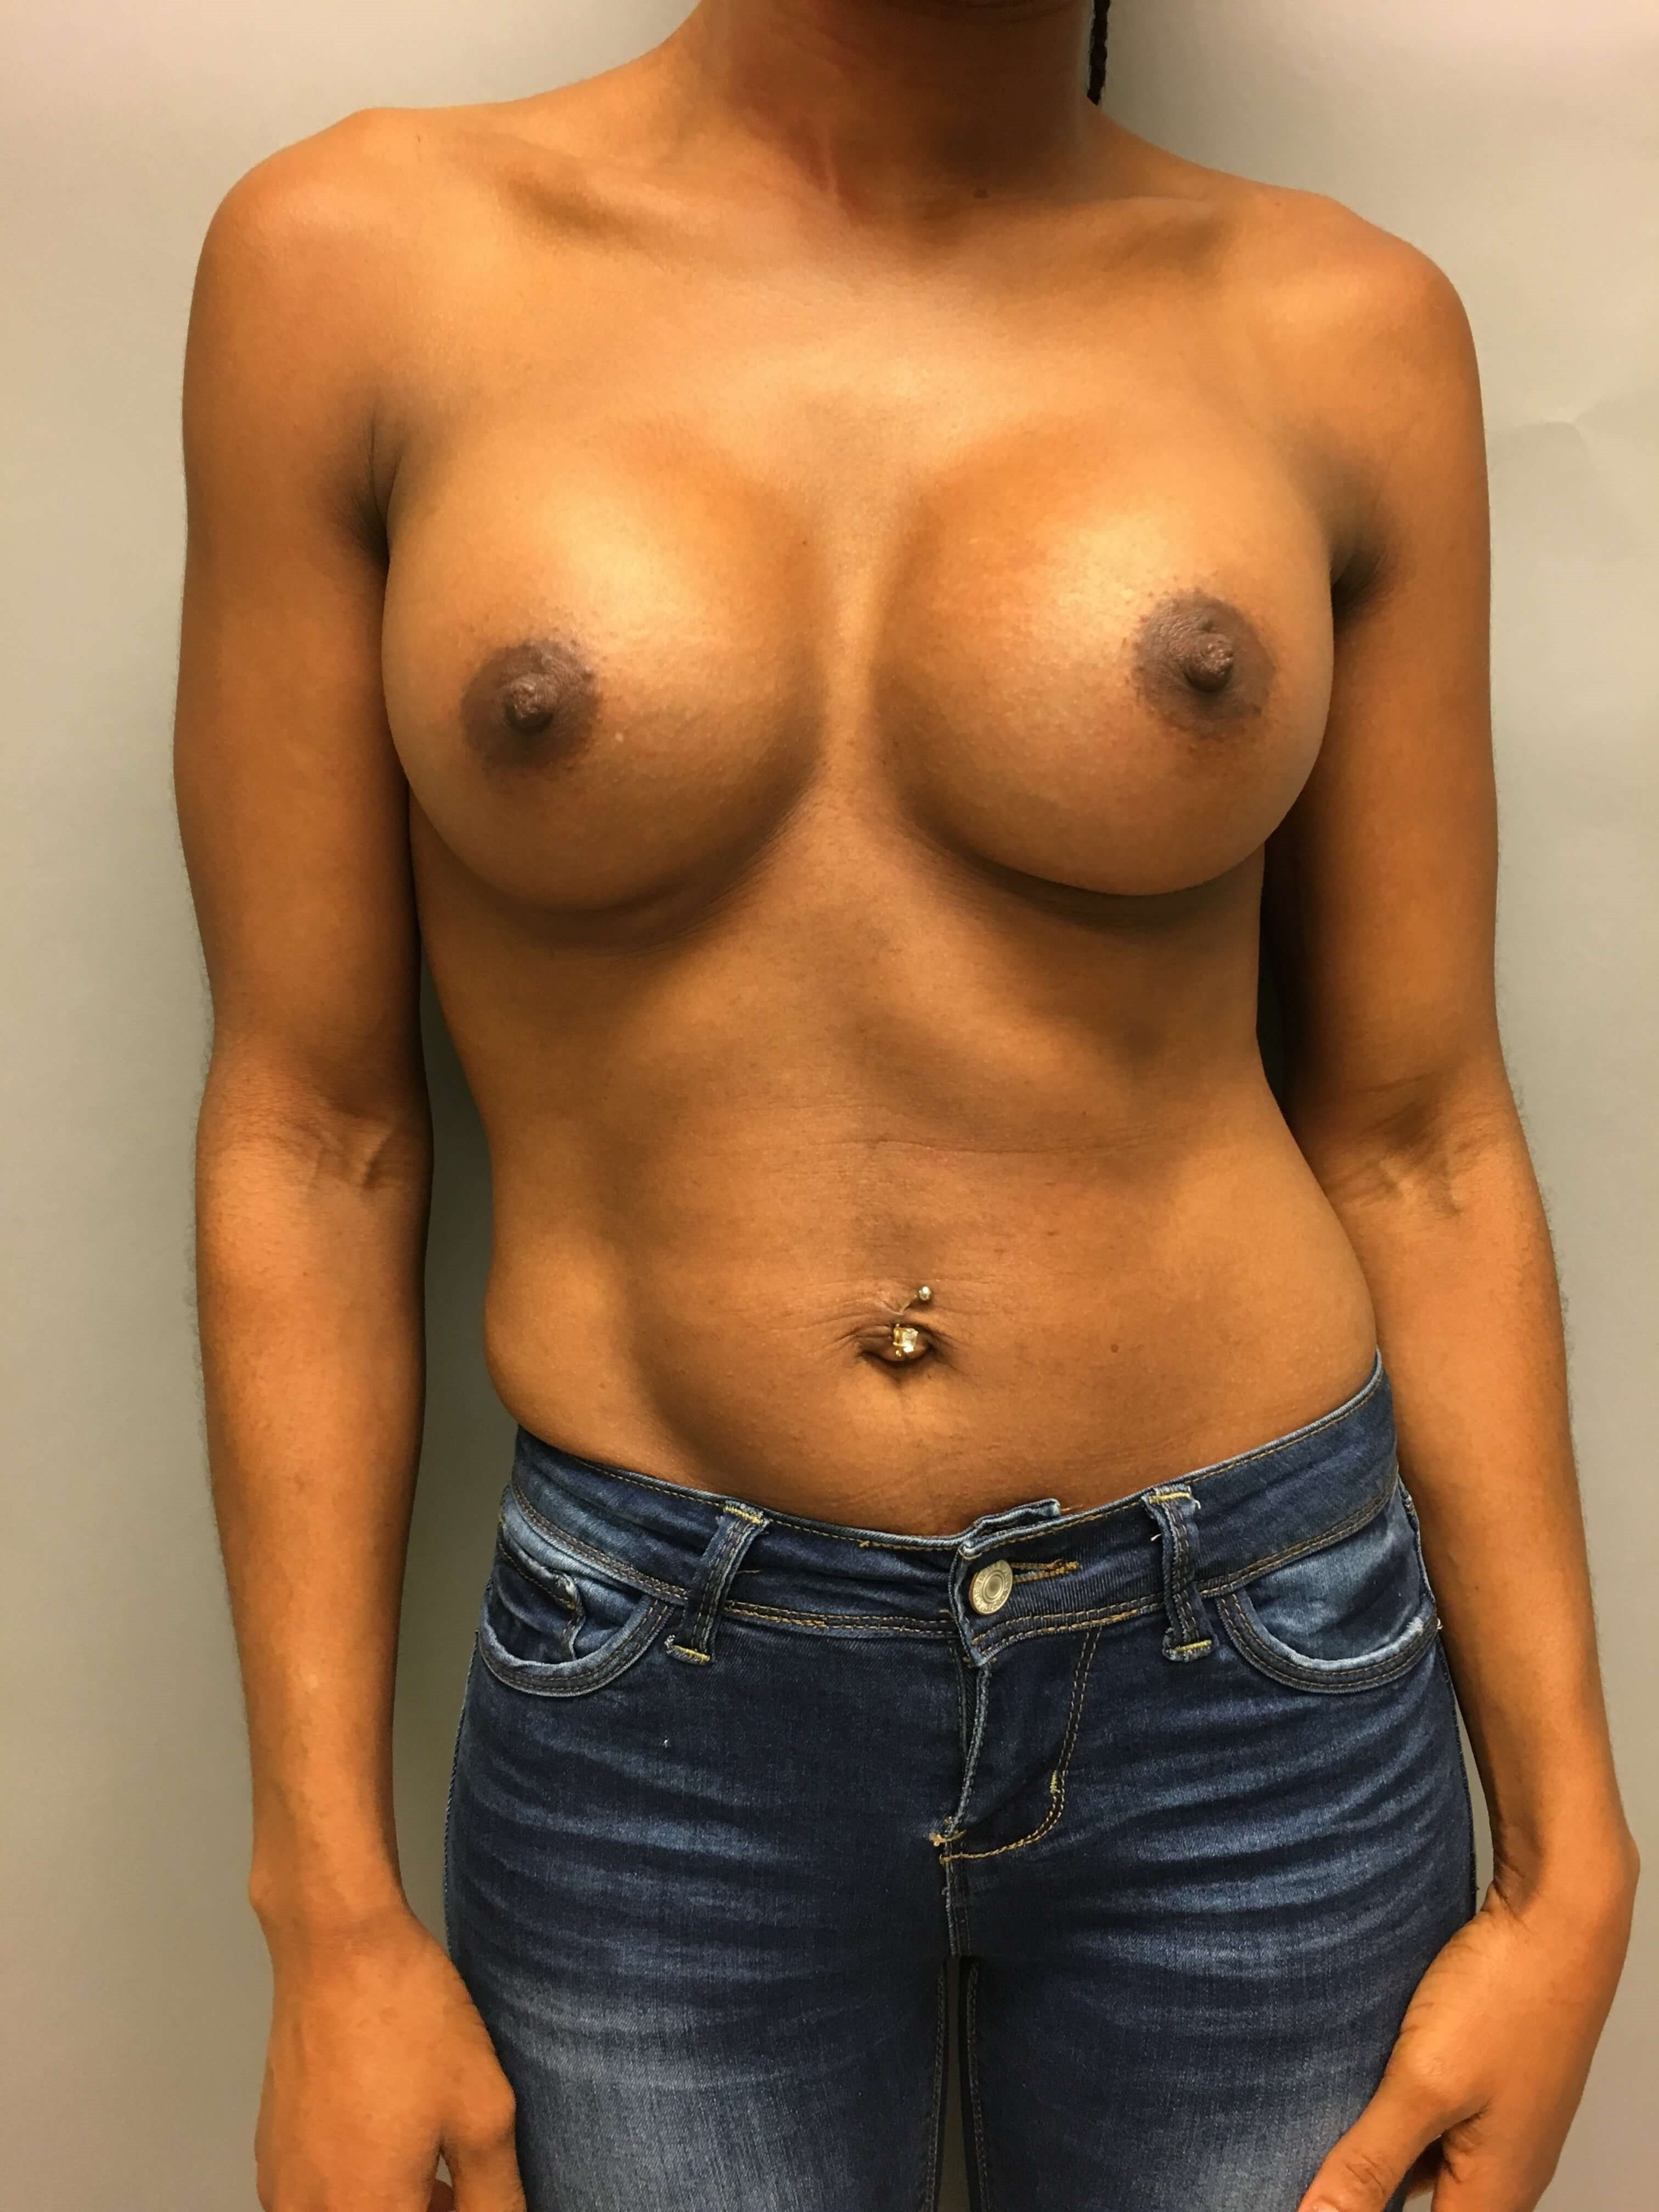 Primary breast augmentation After